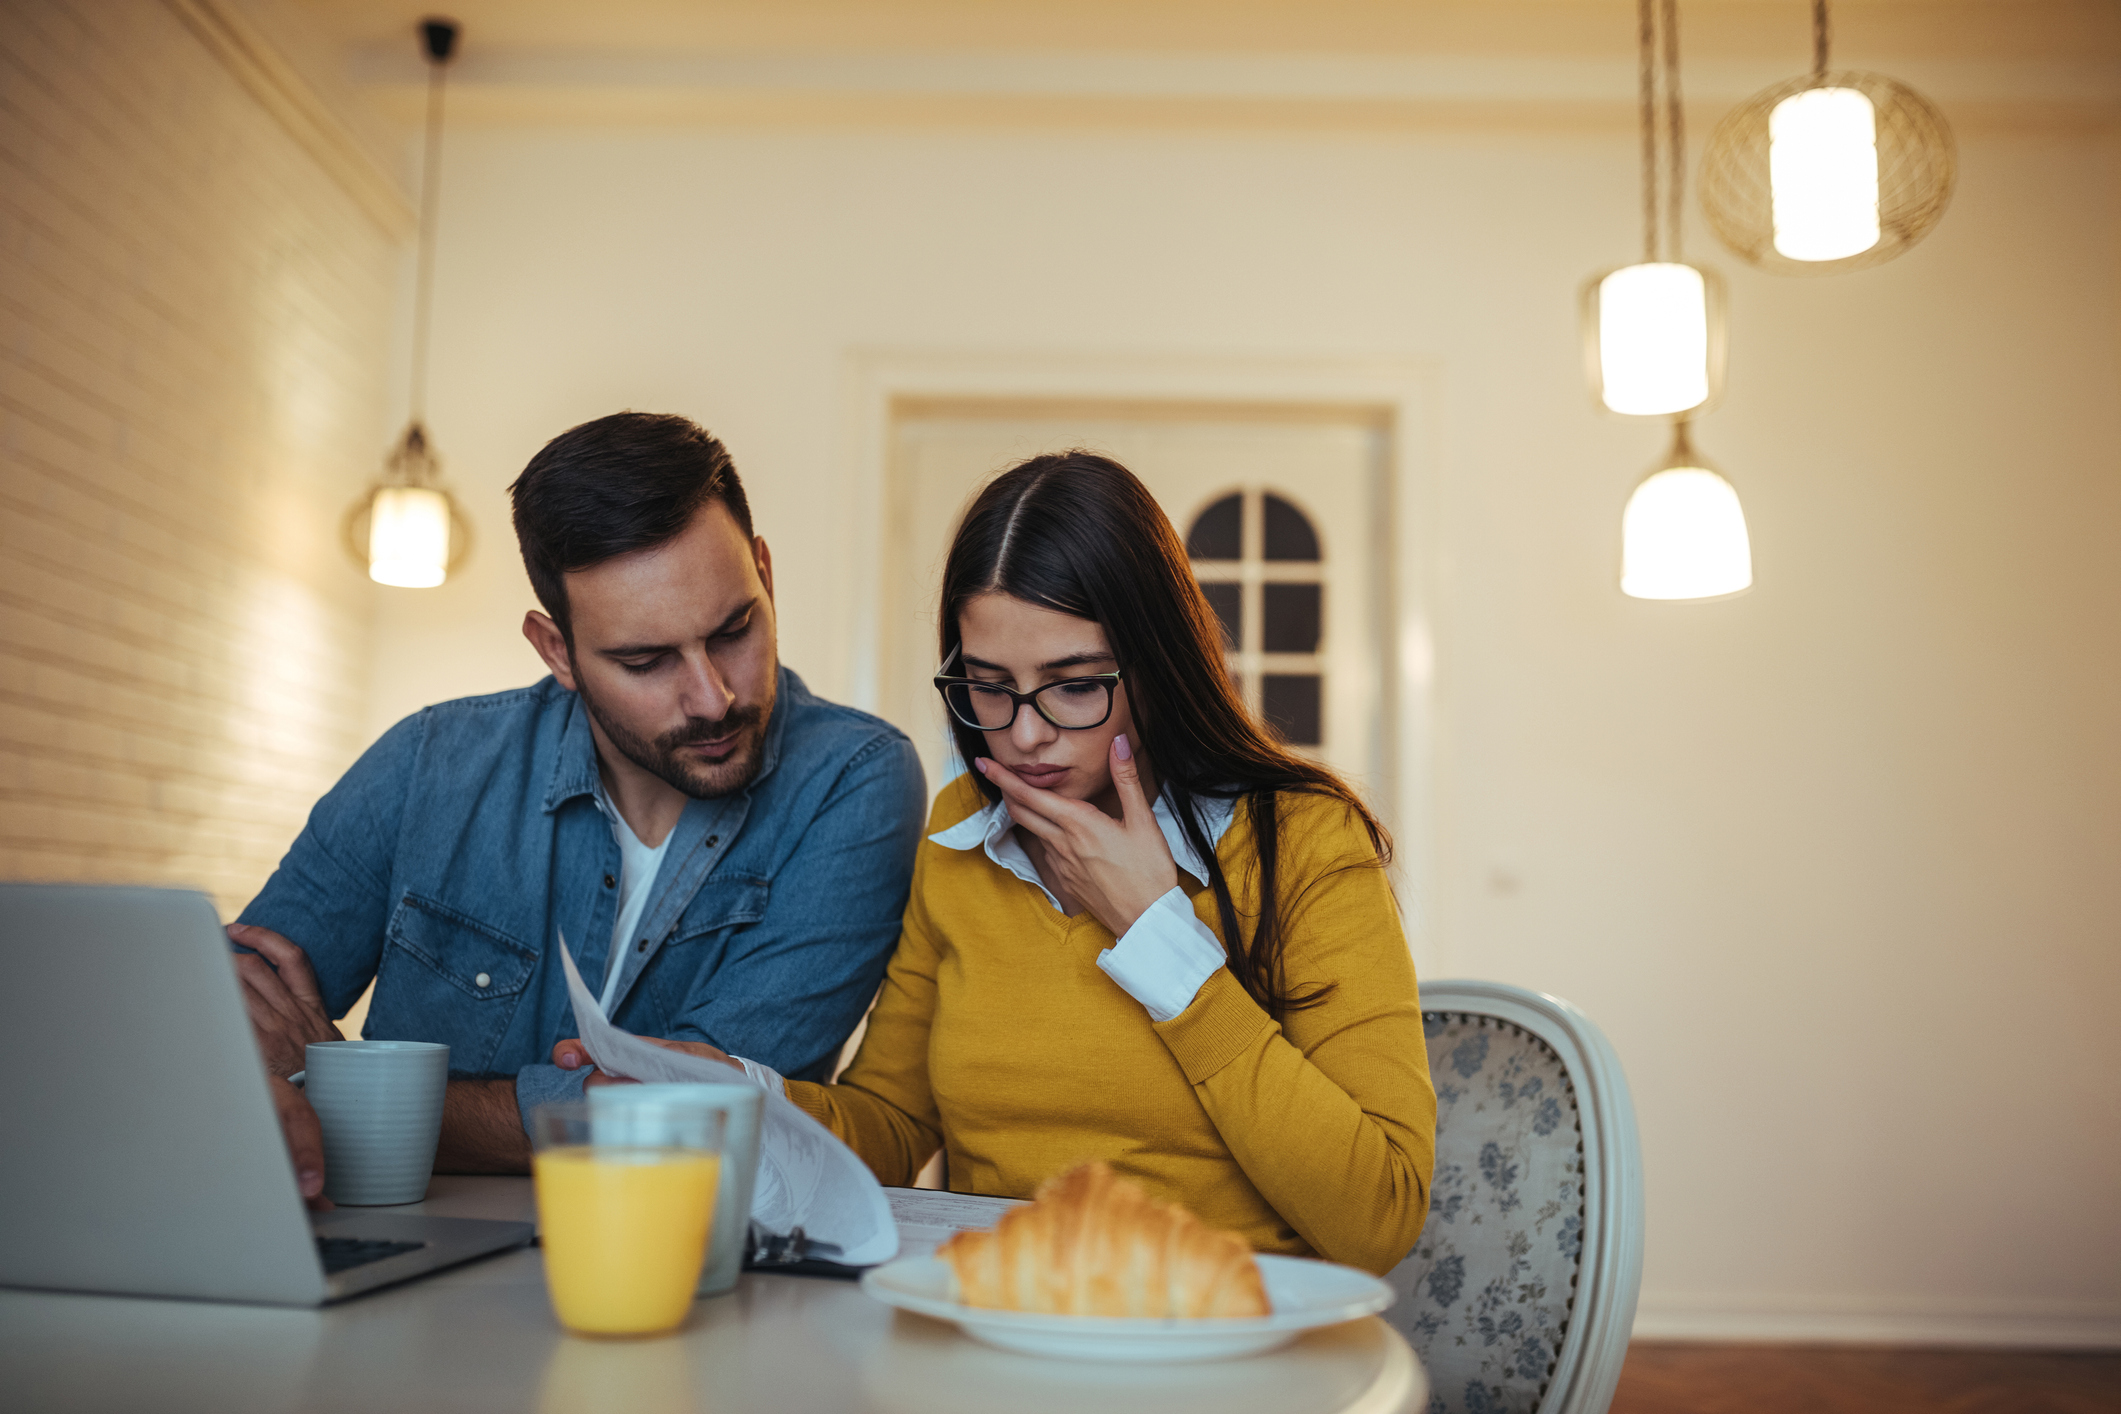 Man and woman looking at credit report